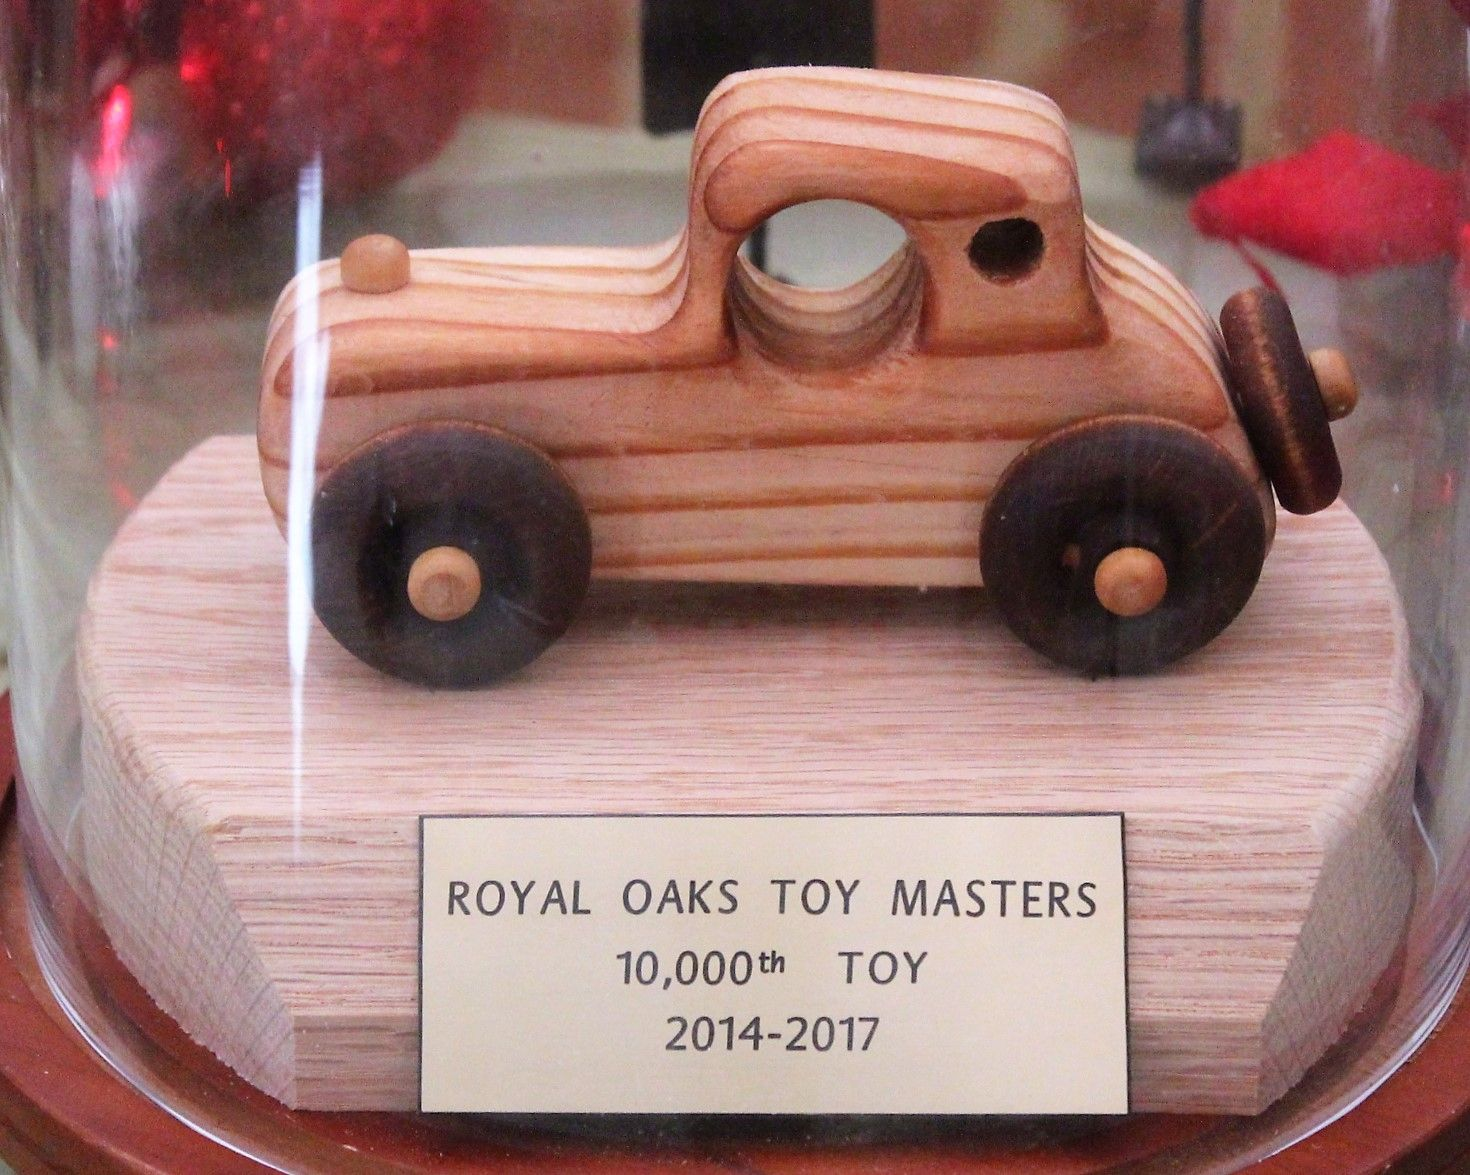 Royal Oaks Toy Crafters celebrate with their 10,000th toy